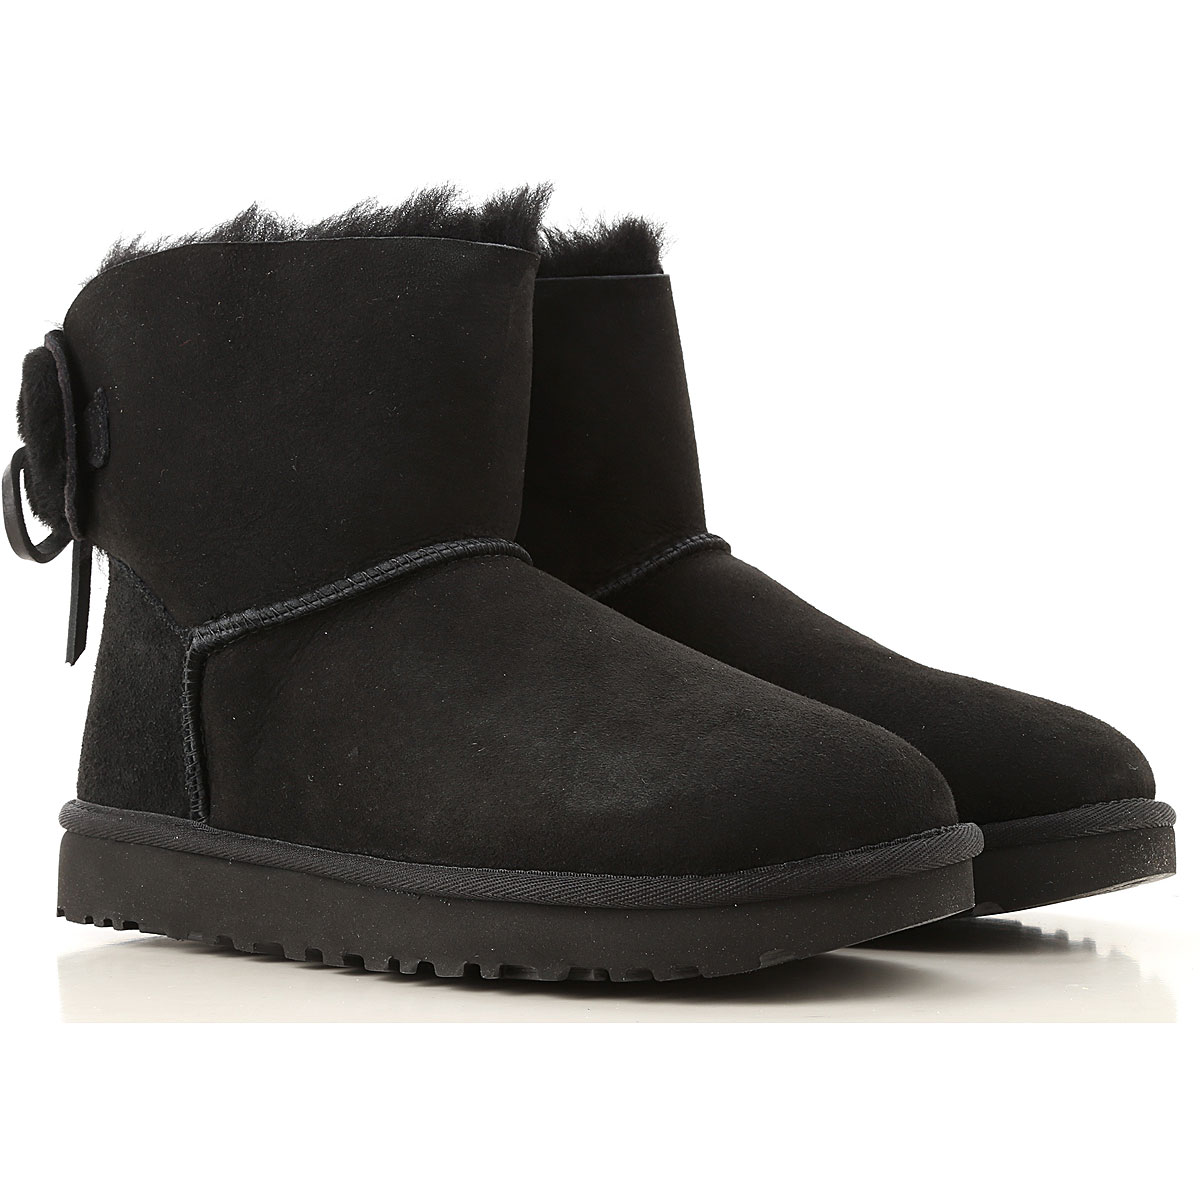 UGG Boots for Women, Booties On Sale, Black, Wool, 2019, USA 5 UK 3 5 EU 36 JAPAN 220 USA 6 UK 4 5 EU 37 JAPAN 230 USA 7 UK 5 5 EU 38 JAPAN